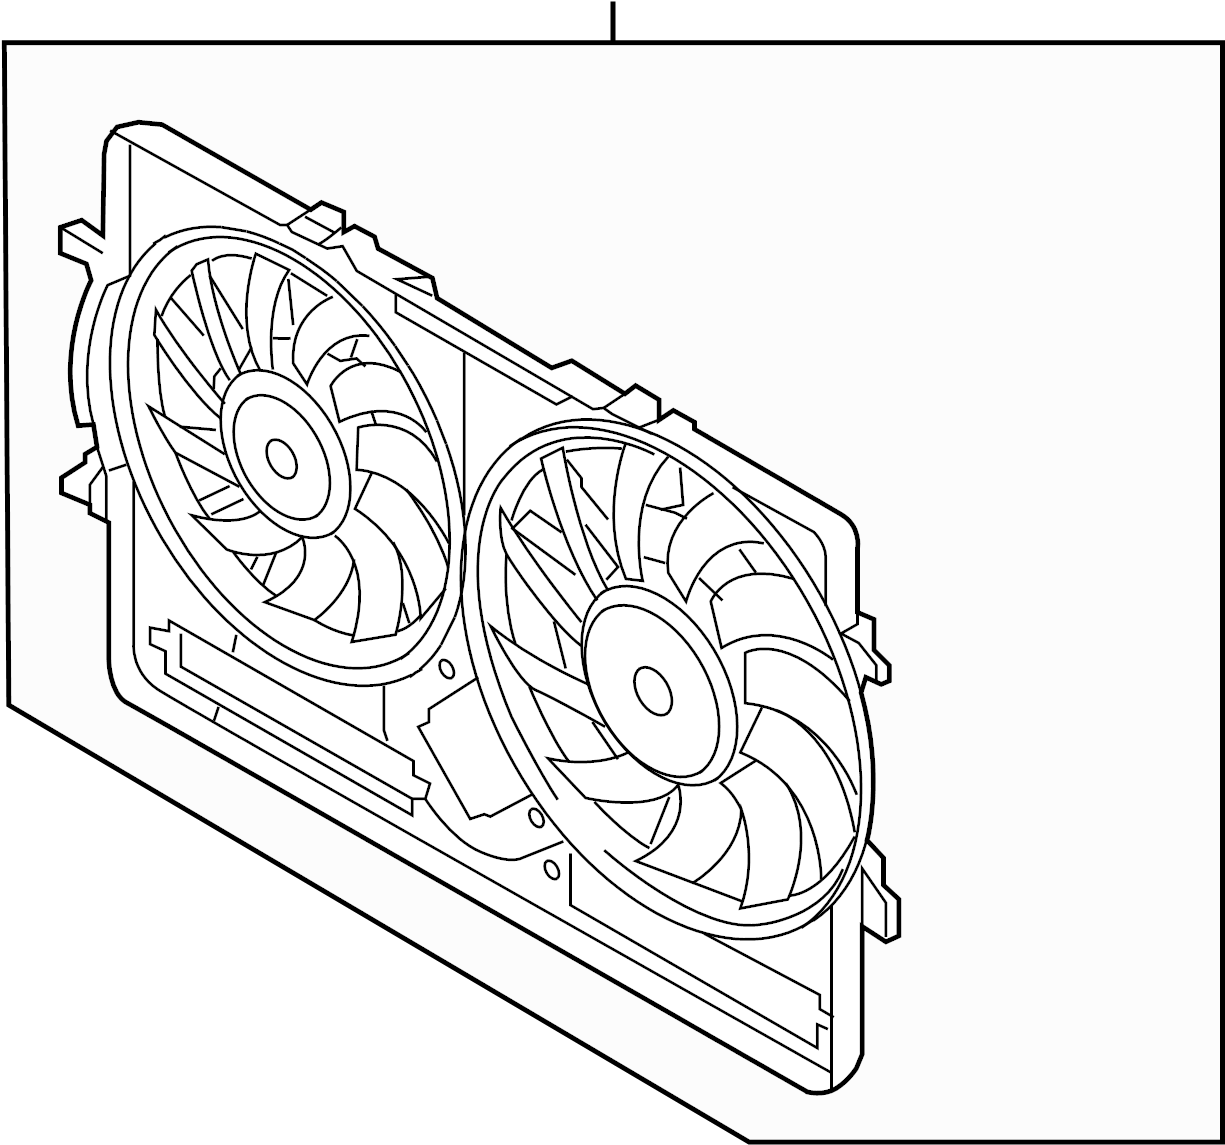 2012 Audi Q5 Engine Cooling Fan Shroud (Front). Inzi